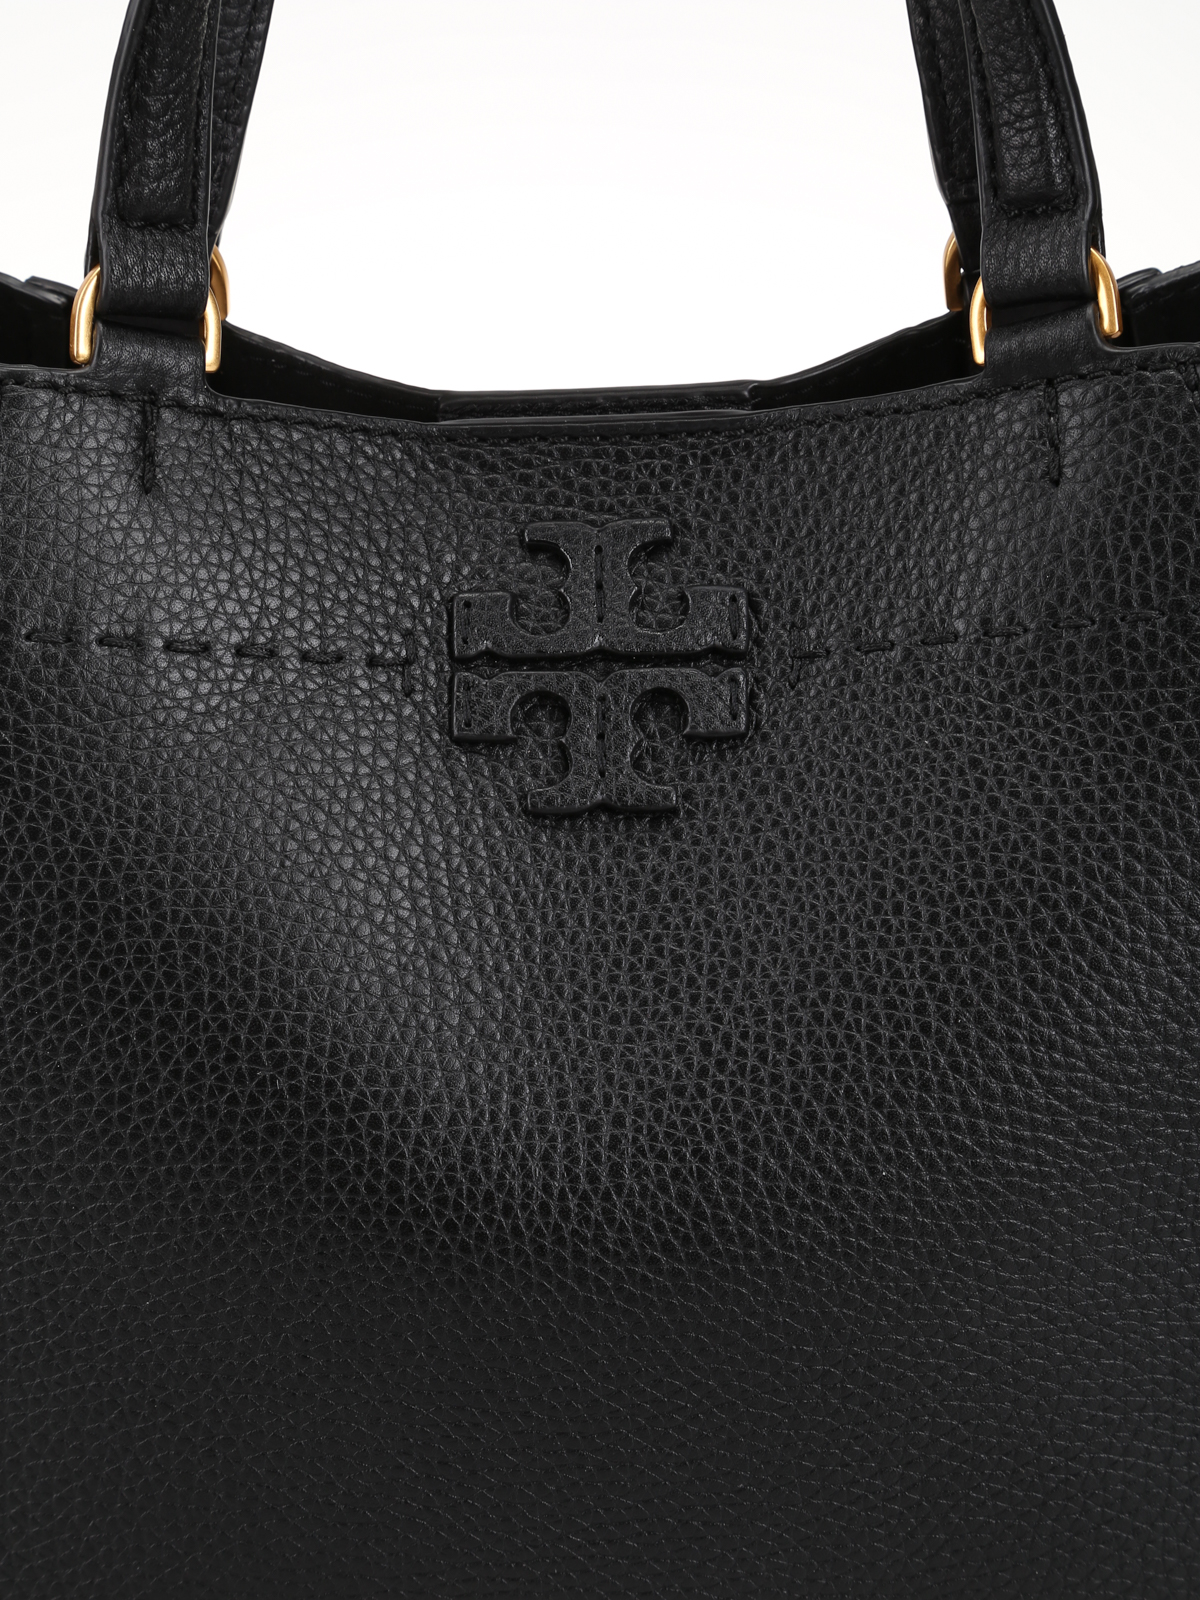 8019e6fae4644 Tory Burch - Black leather small McGraw carryall - totes bags ...